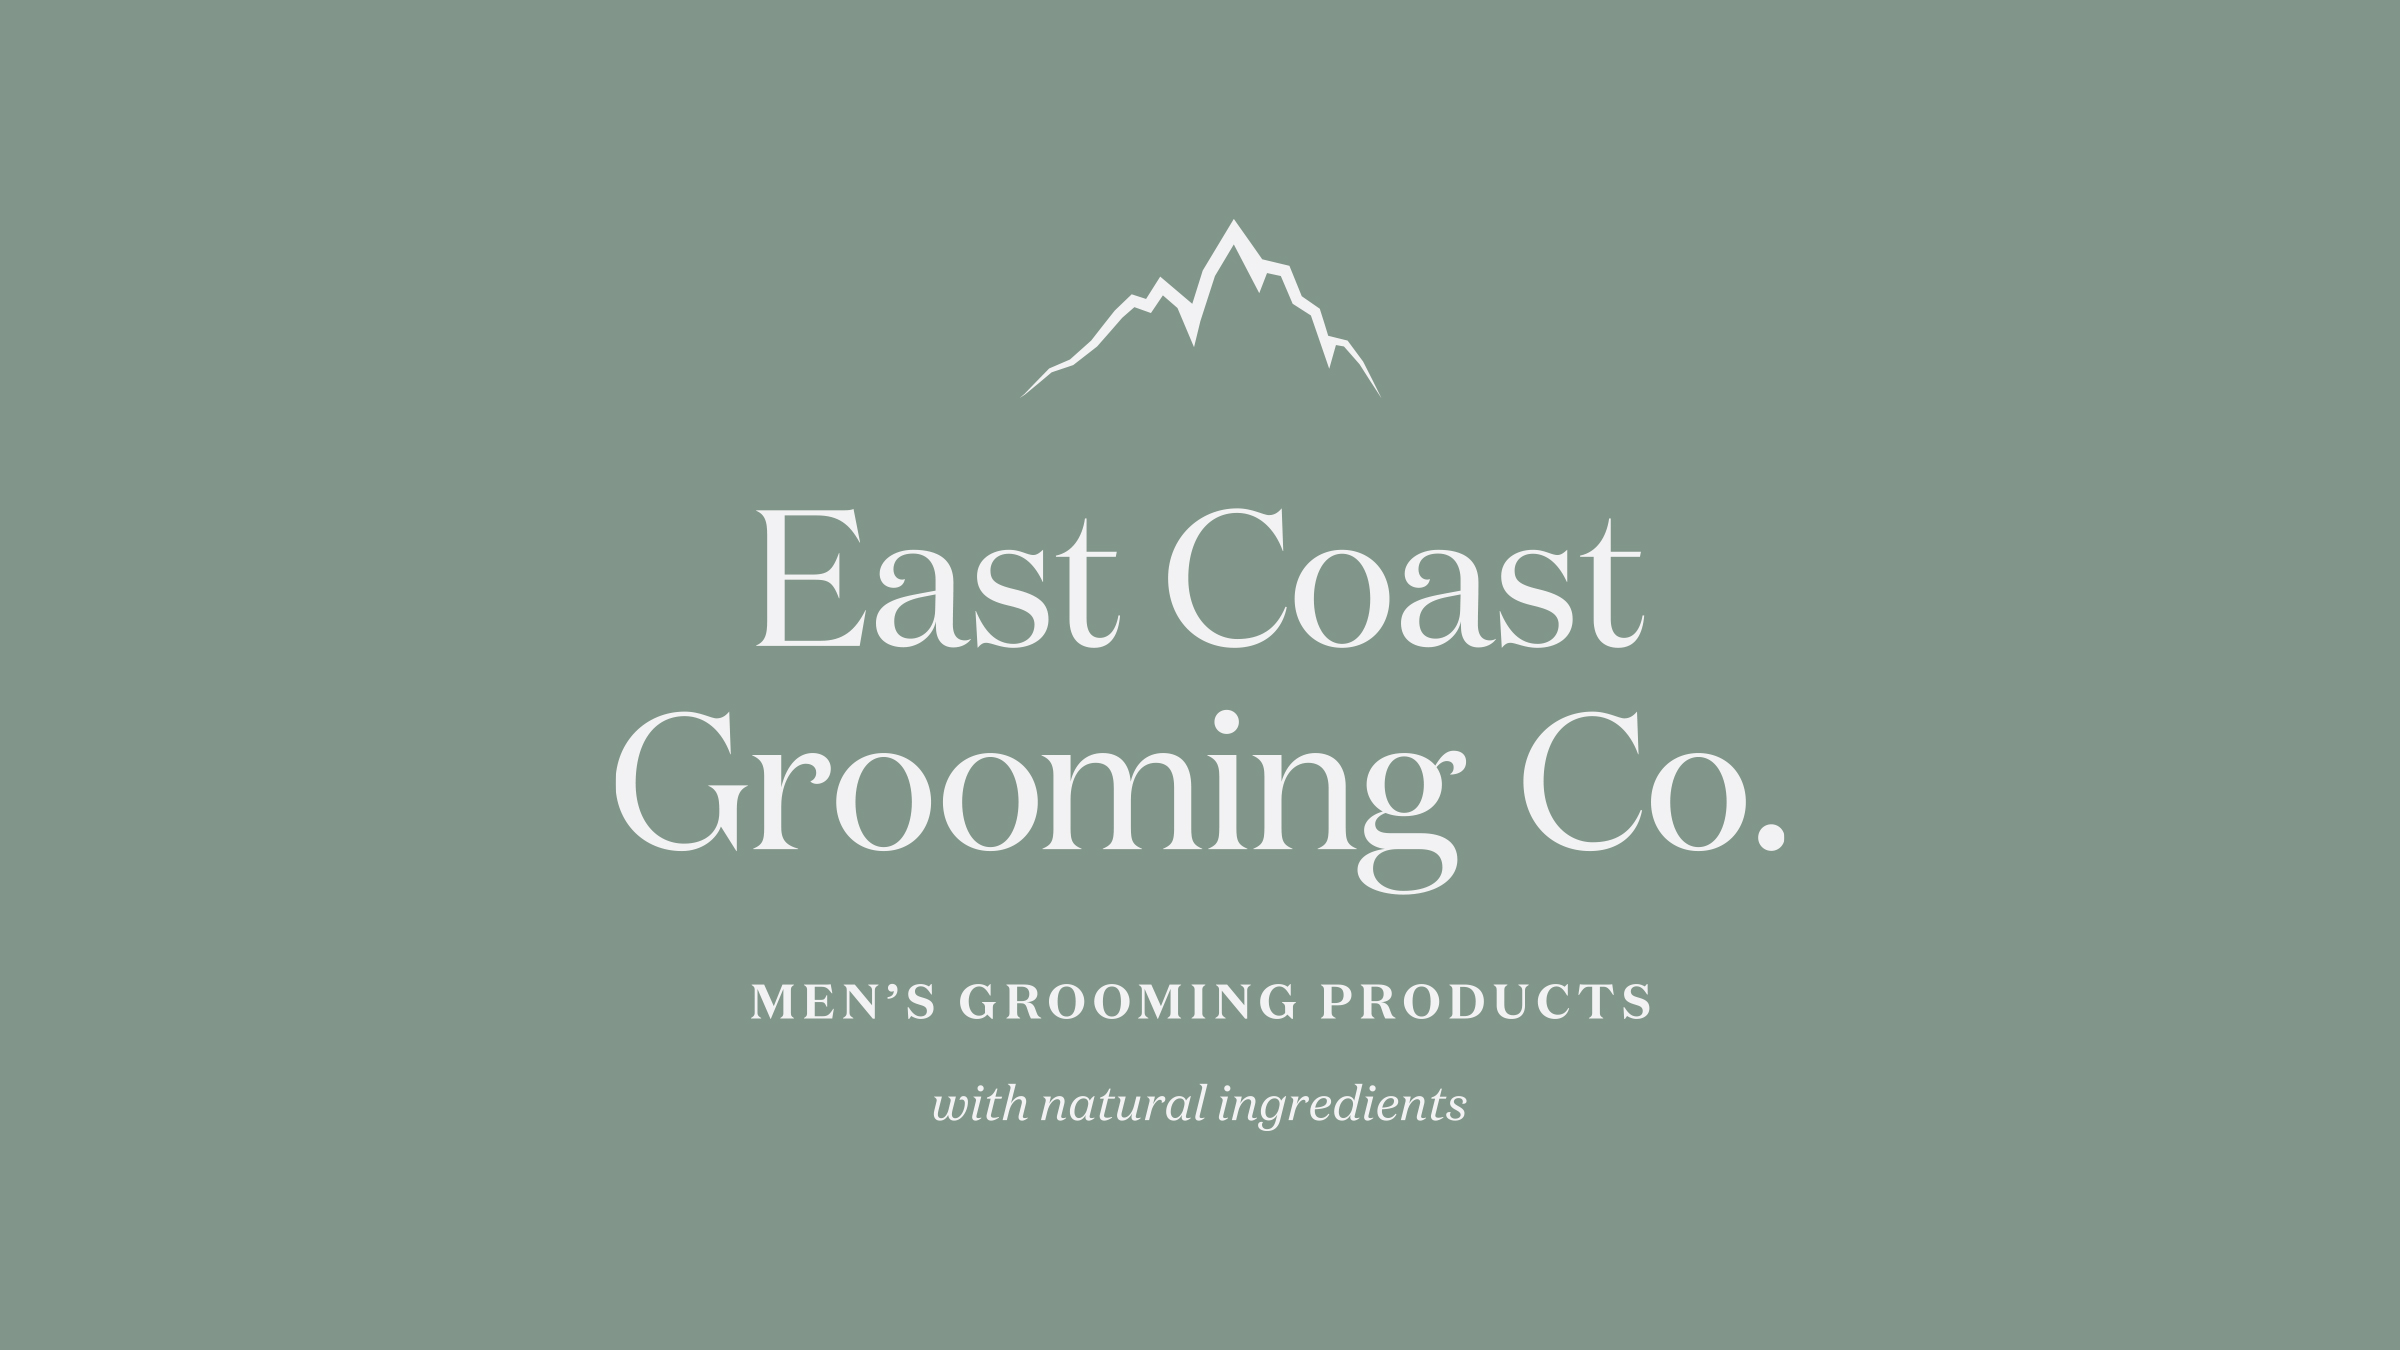 East Coast Grooming Co. brand logo white on green